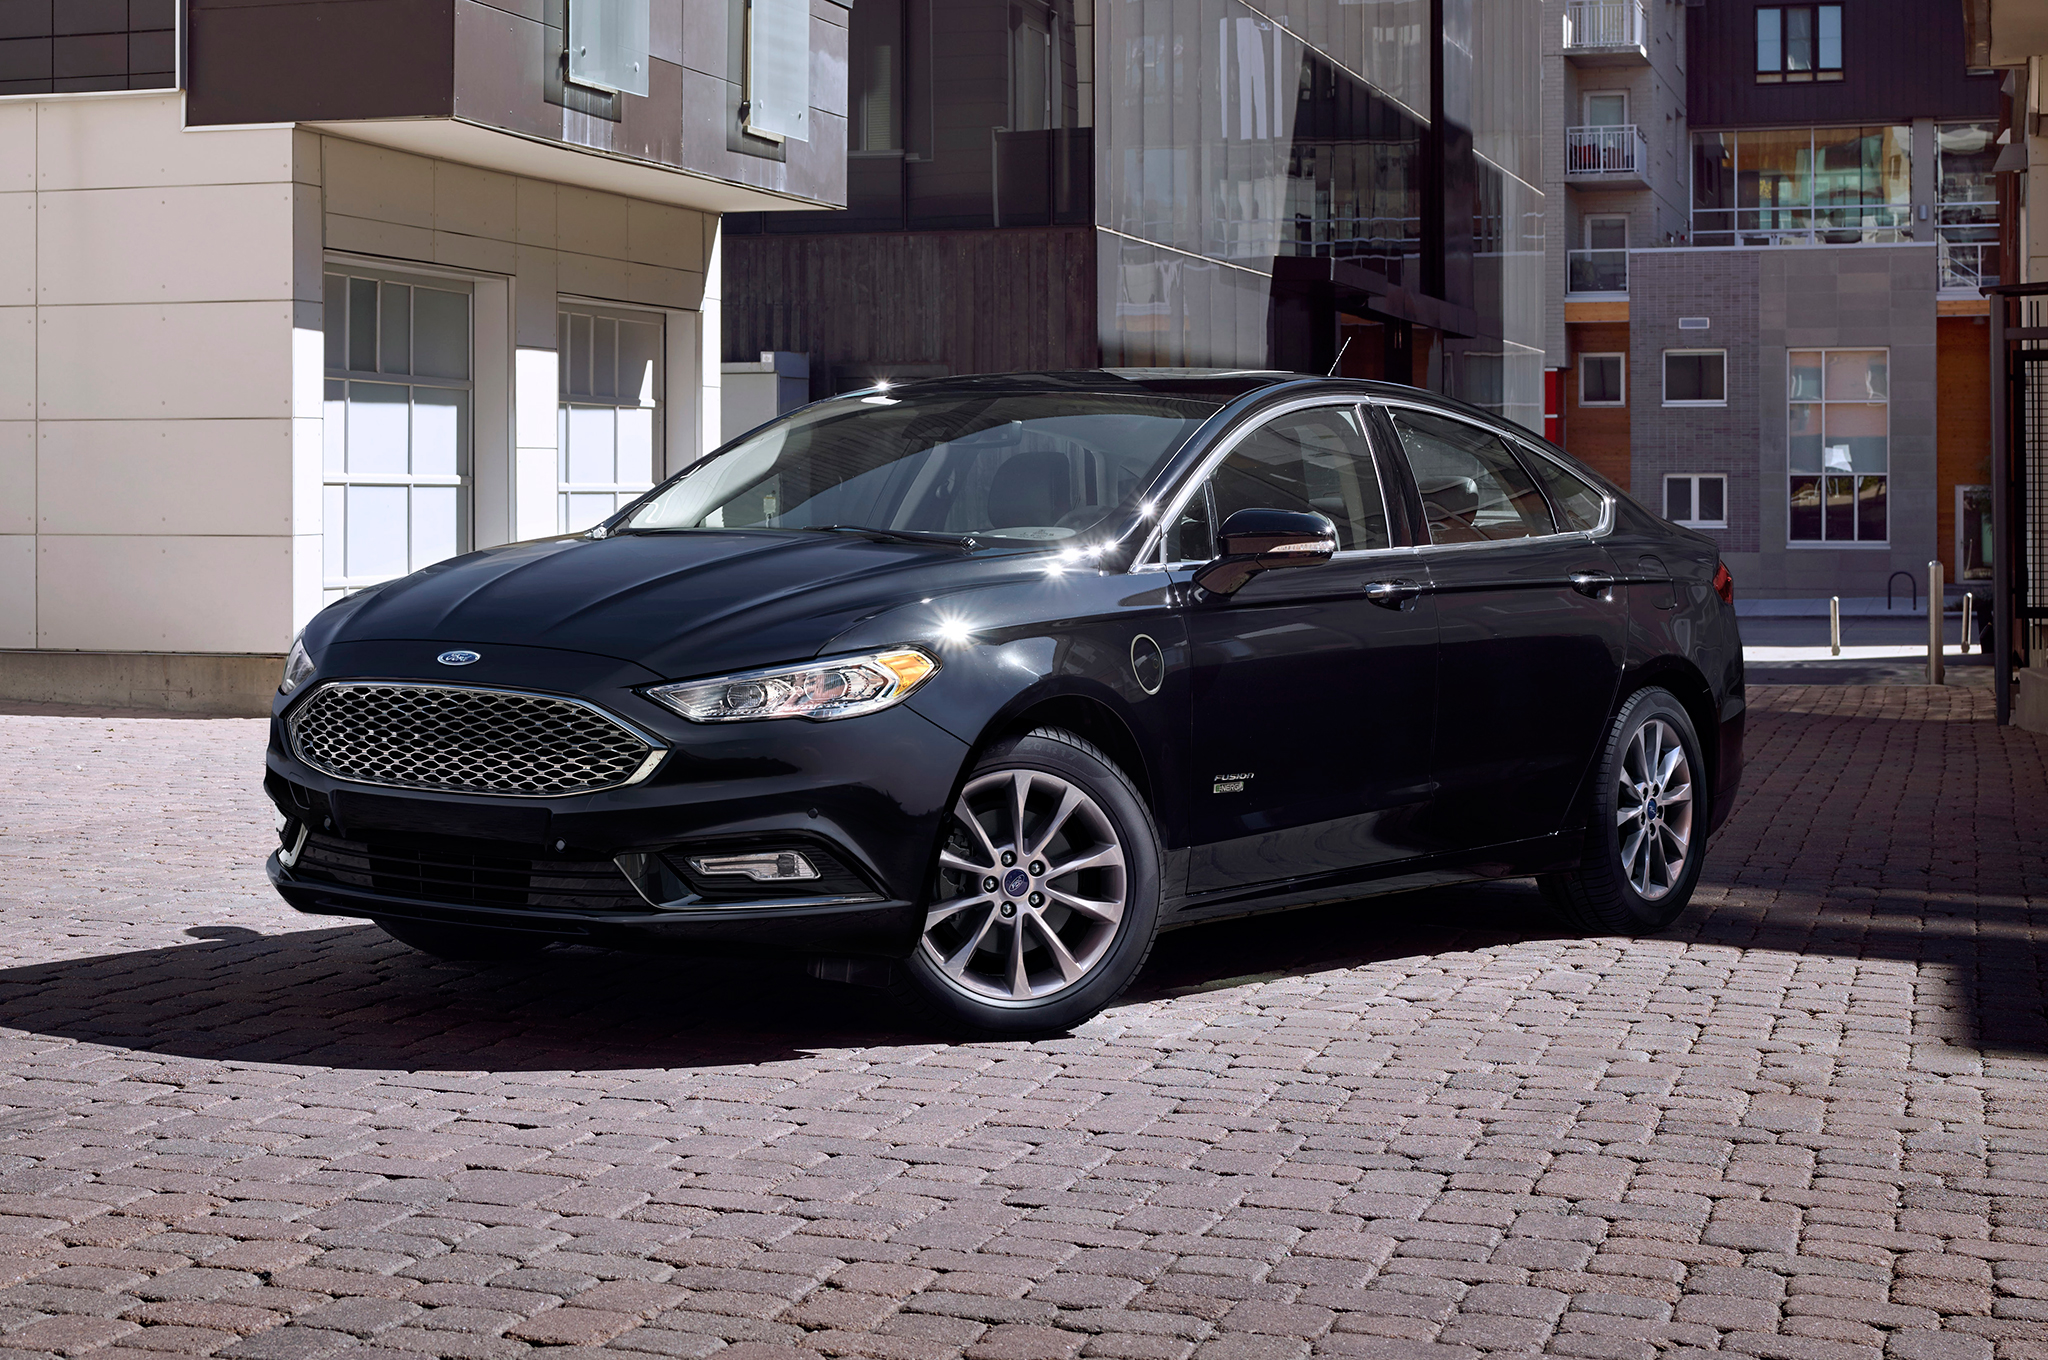 depth s platinum review car model driver first ford fusion and in photo original drive reviews